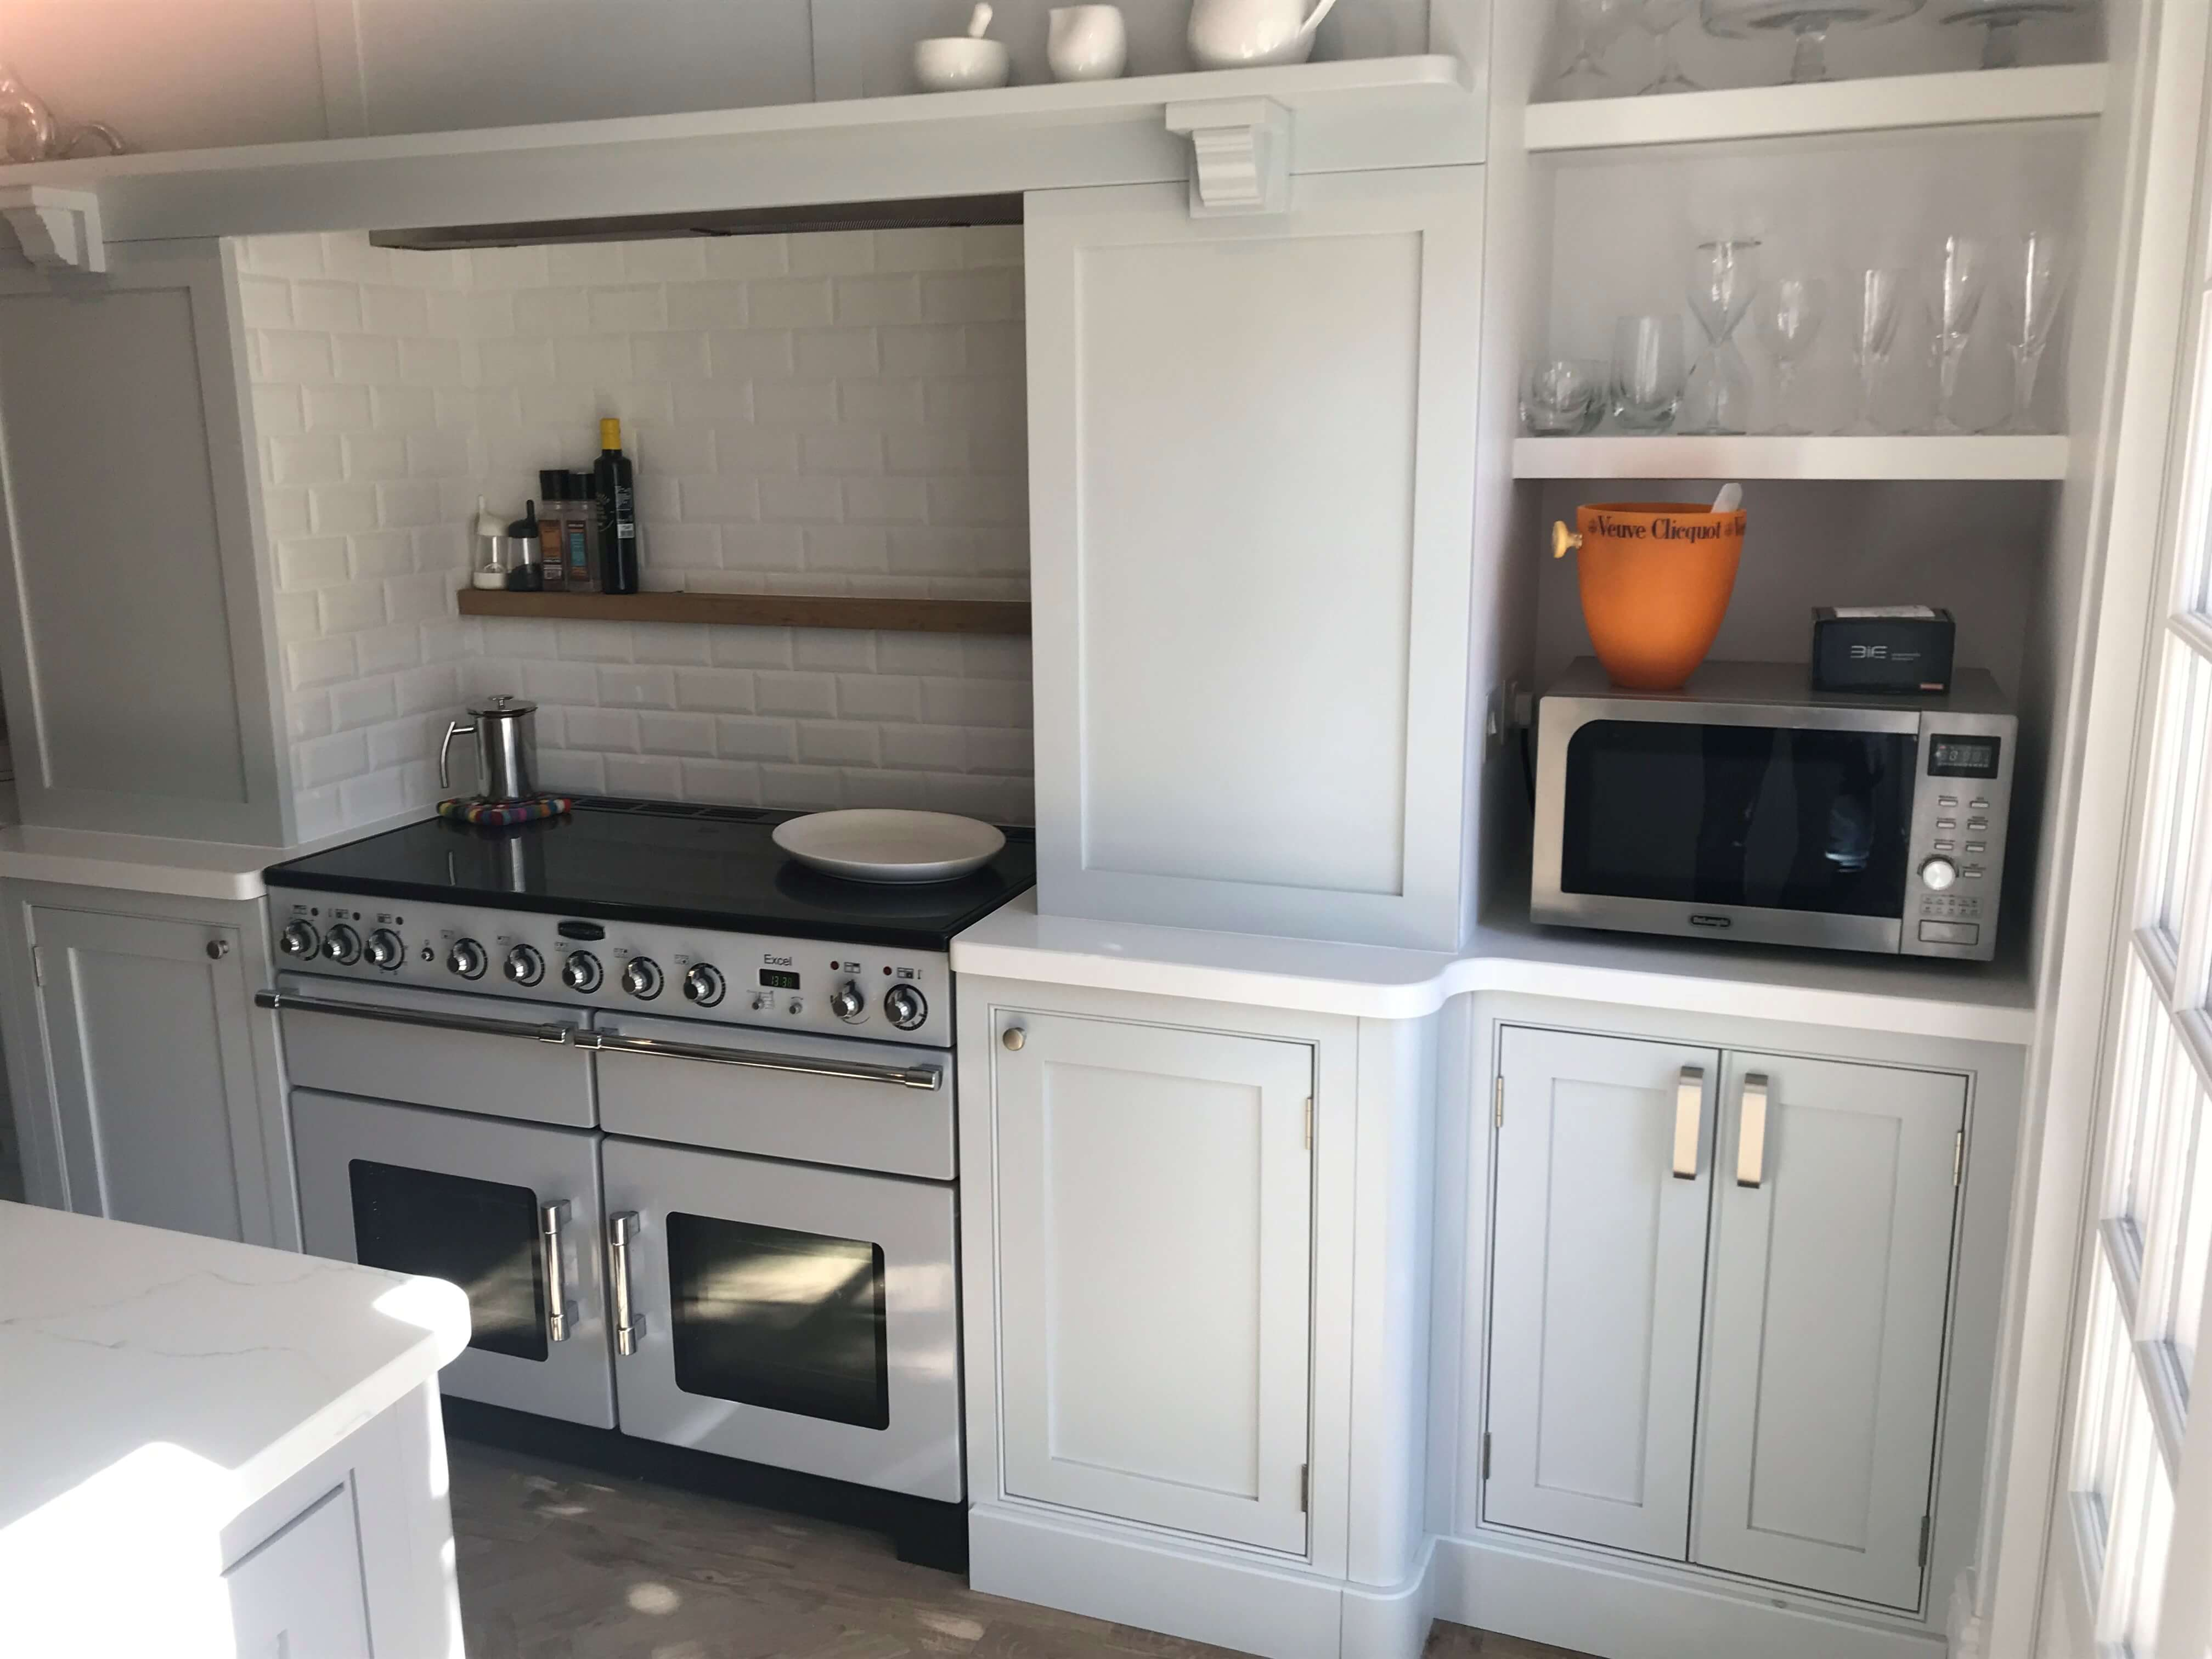 Shaker Kitchen, Bespoke Fitted furniture, Storage, Shelves, Fitted Shelf's, Kitchen, Bespoke Kitchen, Leamington Spa, Warwick, Elegant Bespoke living, Joinery, Carpentry